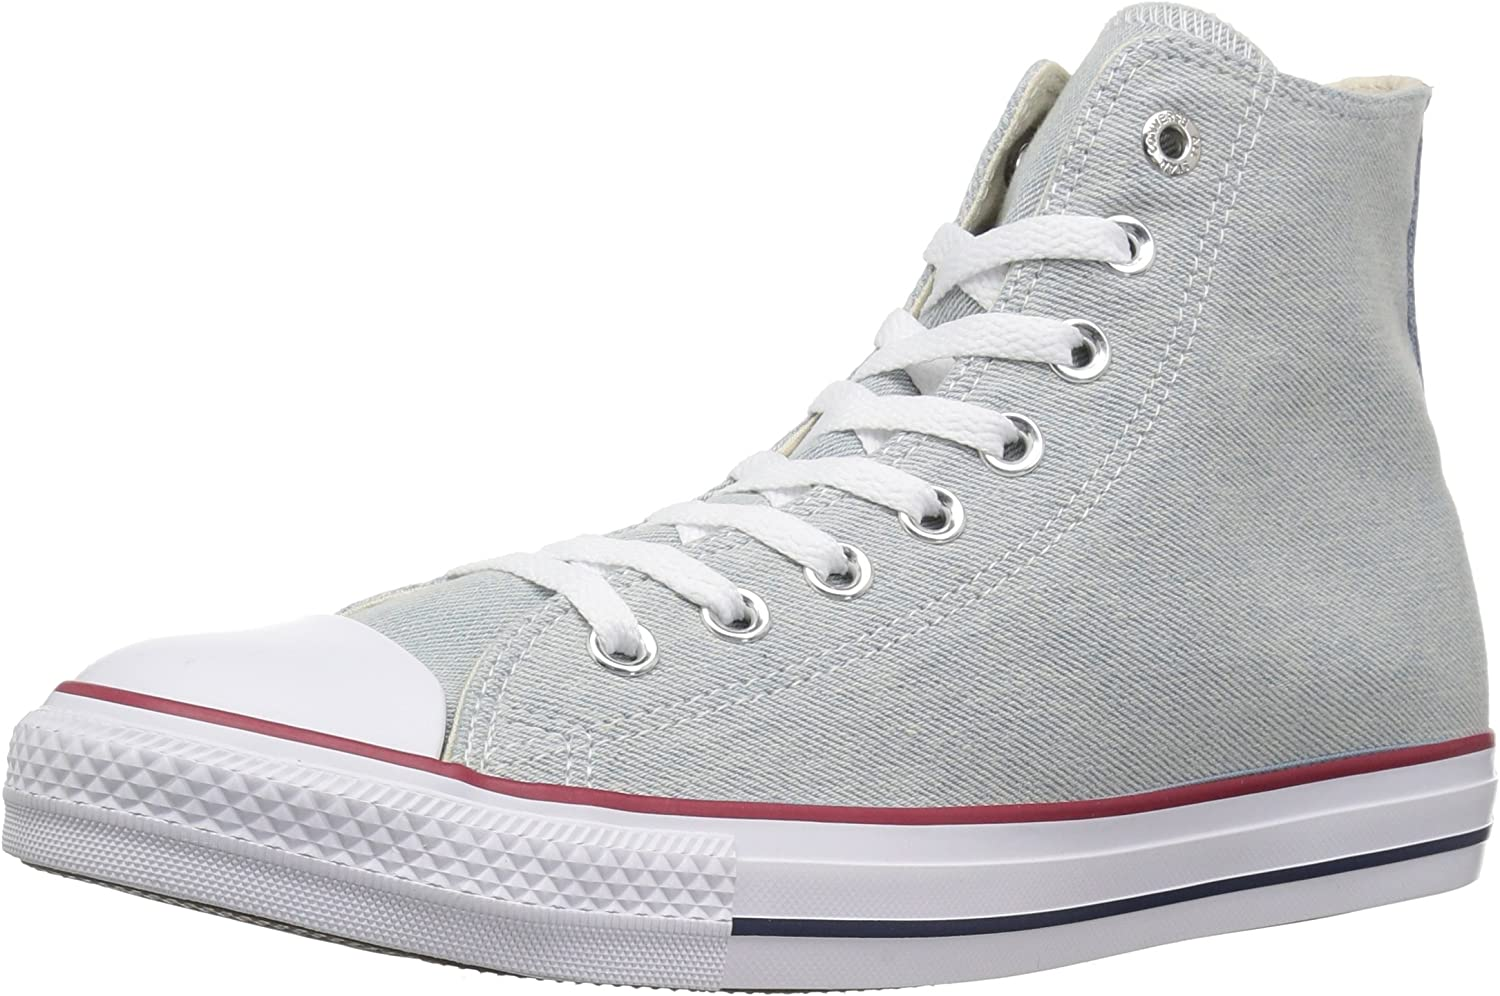 Converse Chuck Taylor All Star Denim High Top Sneaker